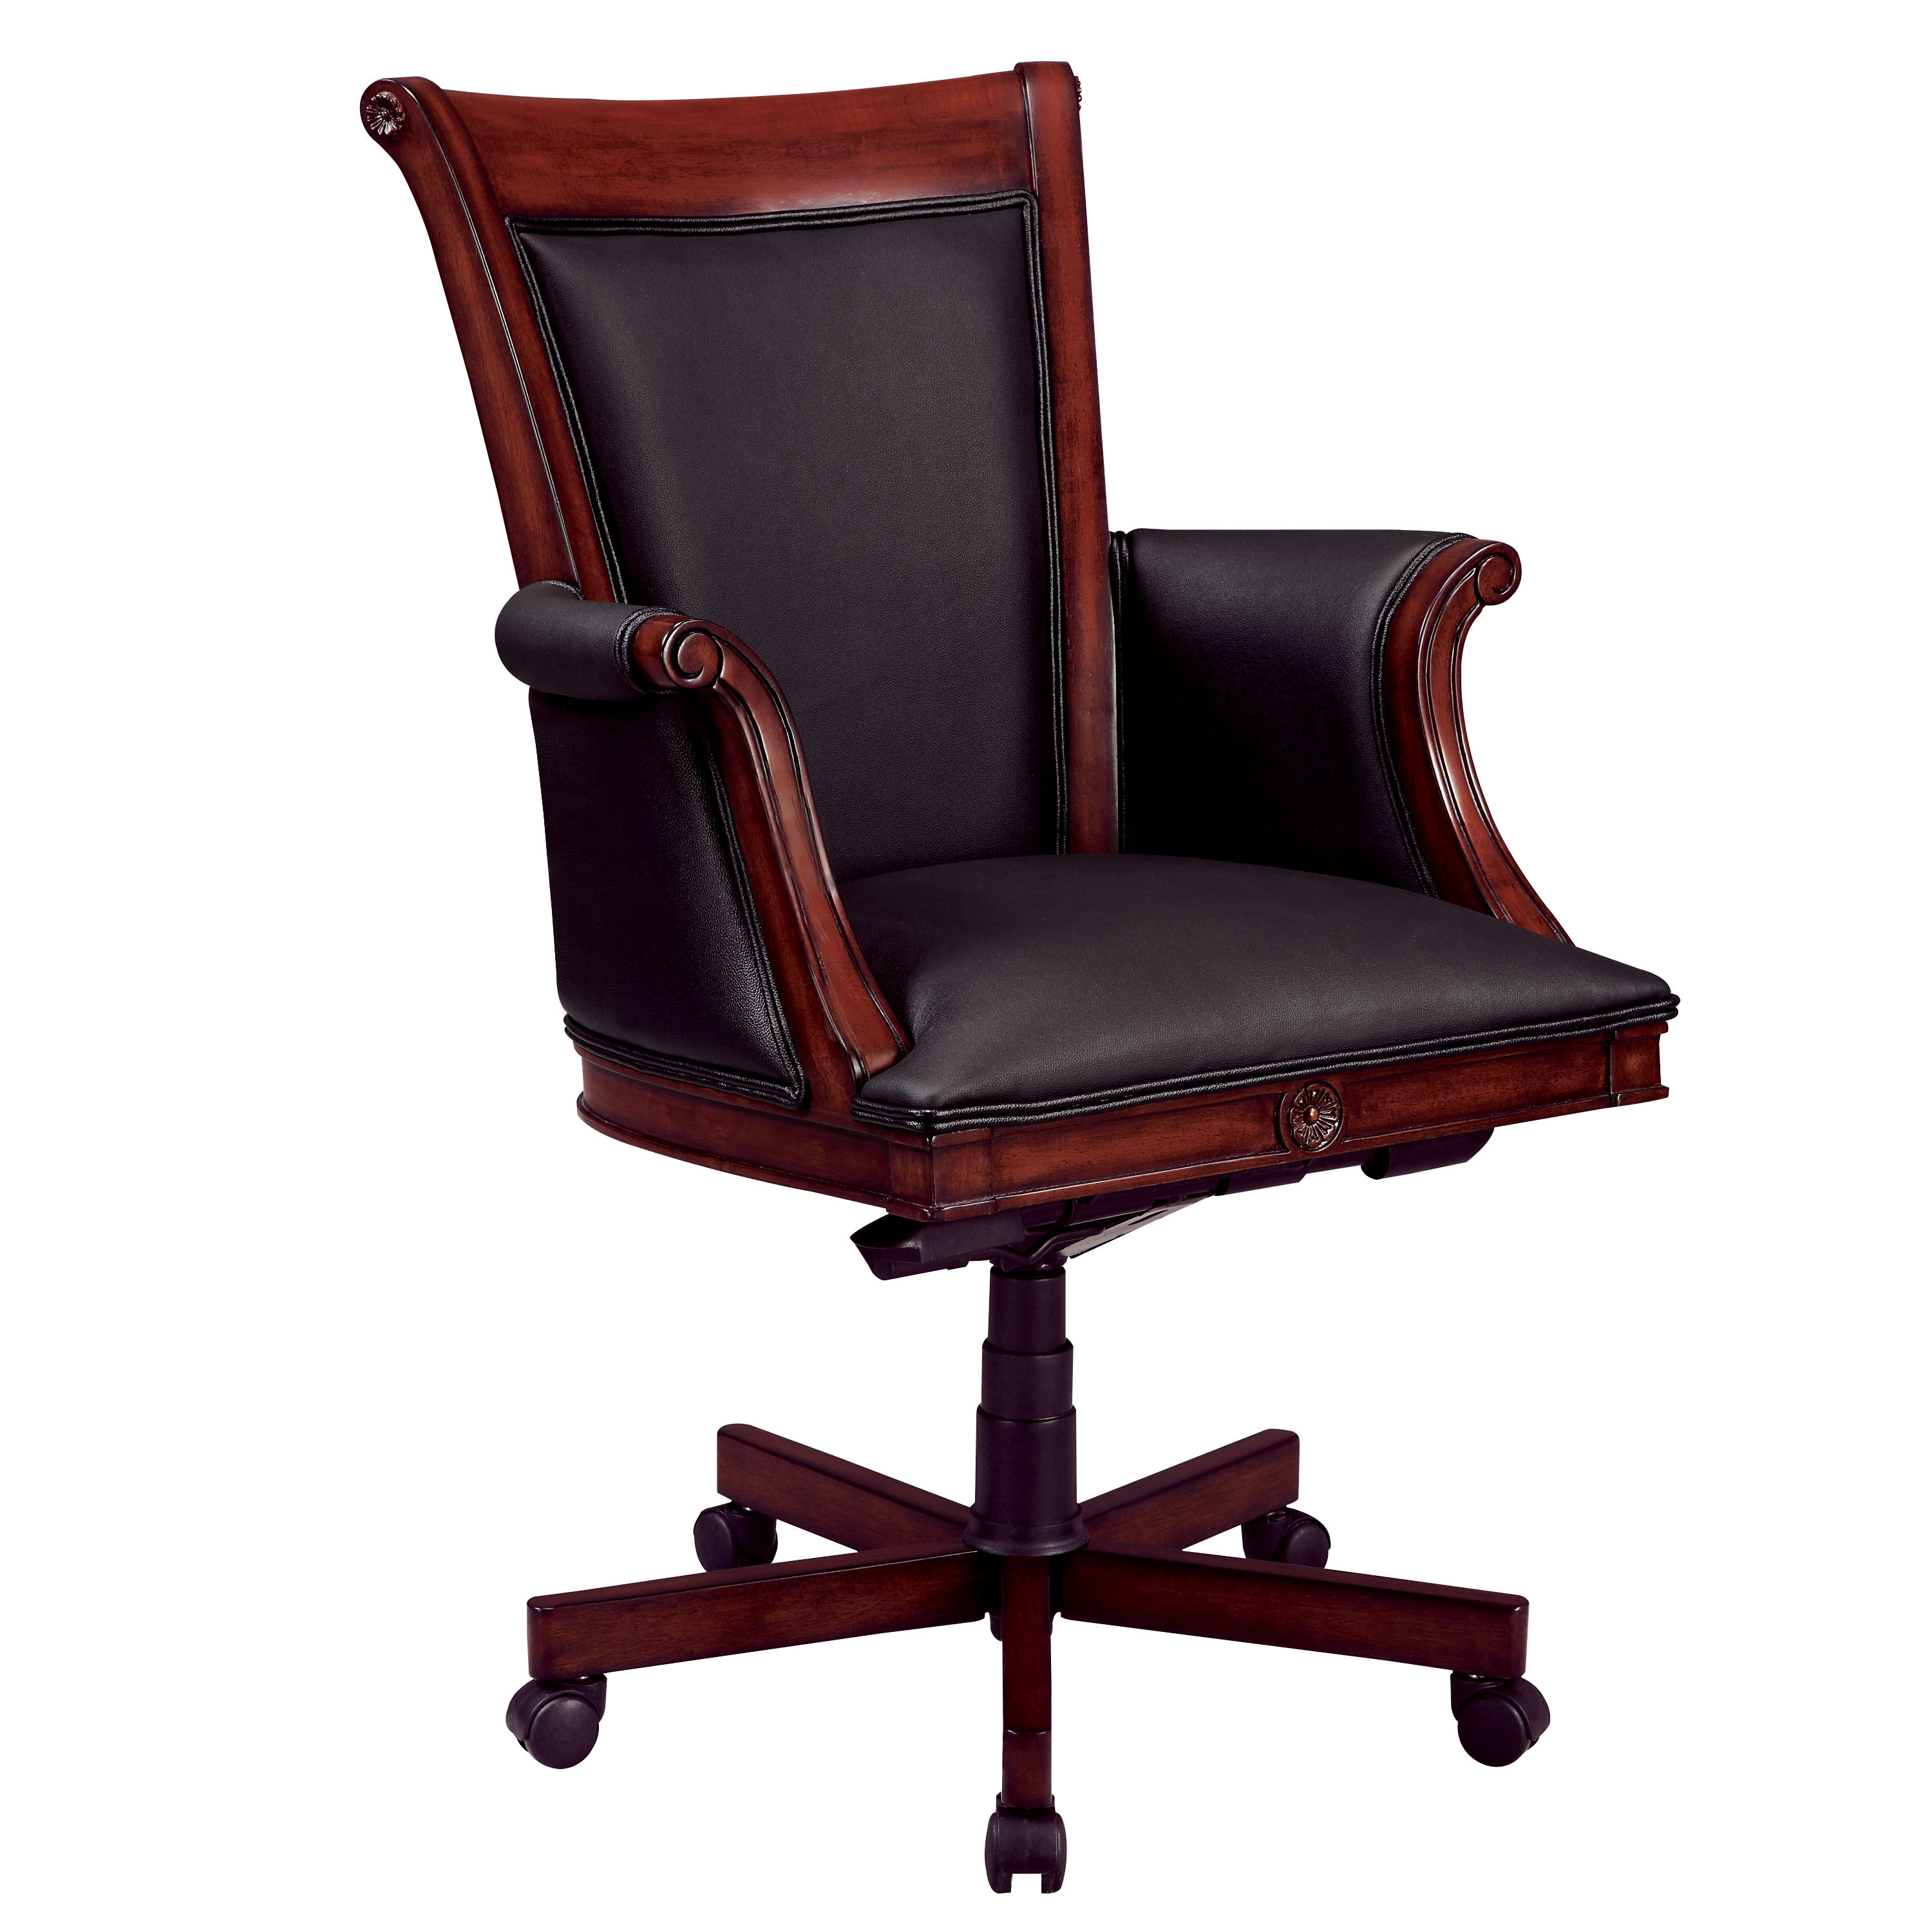 Dmi Office Furniture Executive High Back Chair with Sedona Cherry Wood/Upholstered Arms